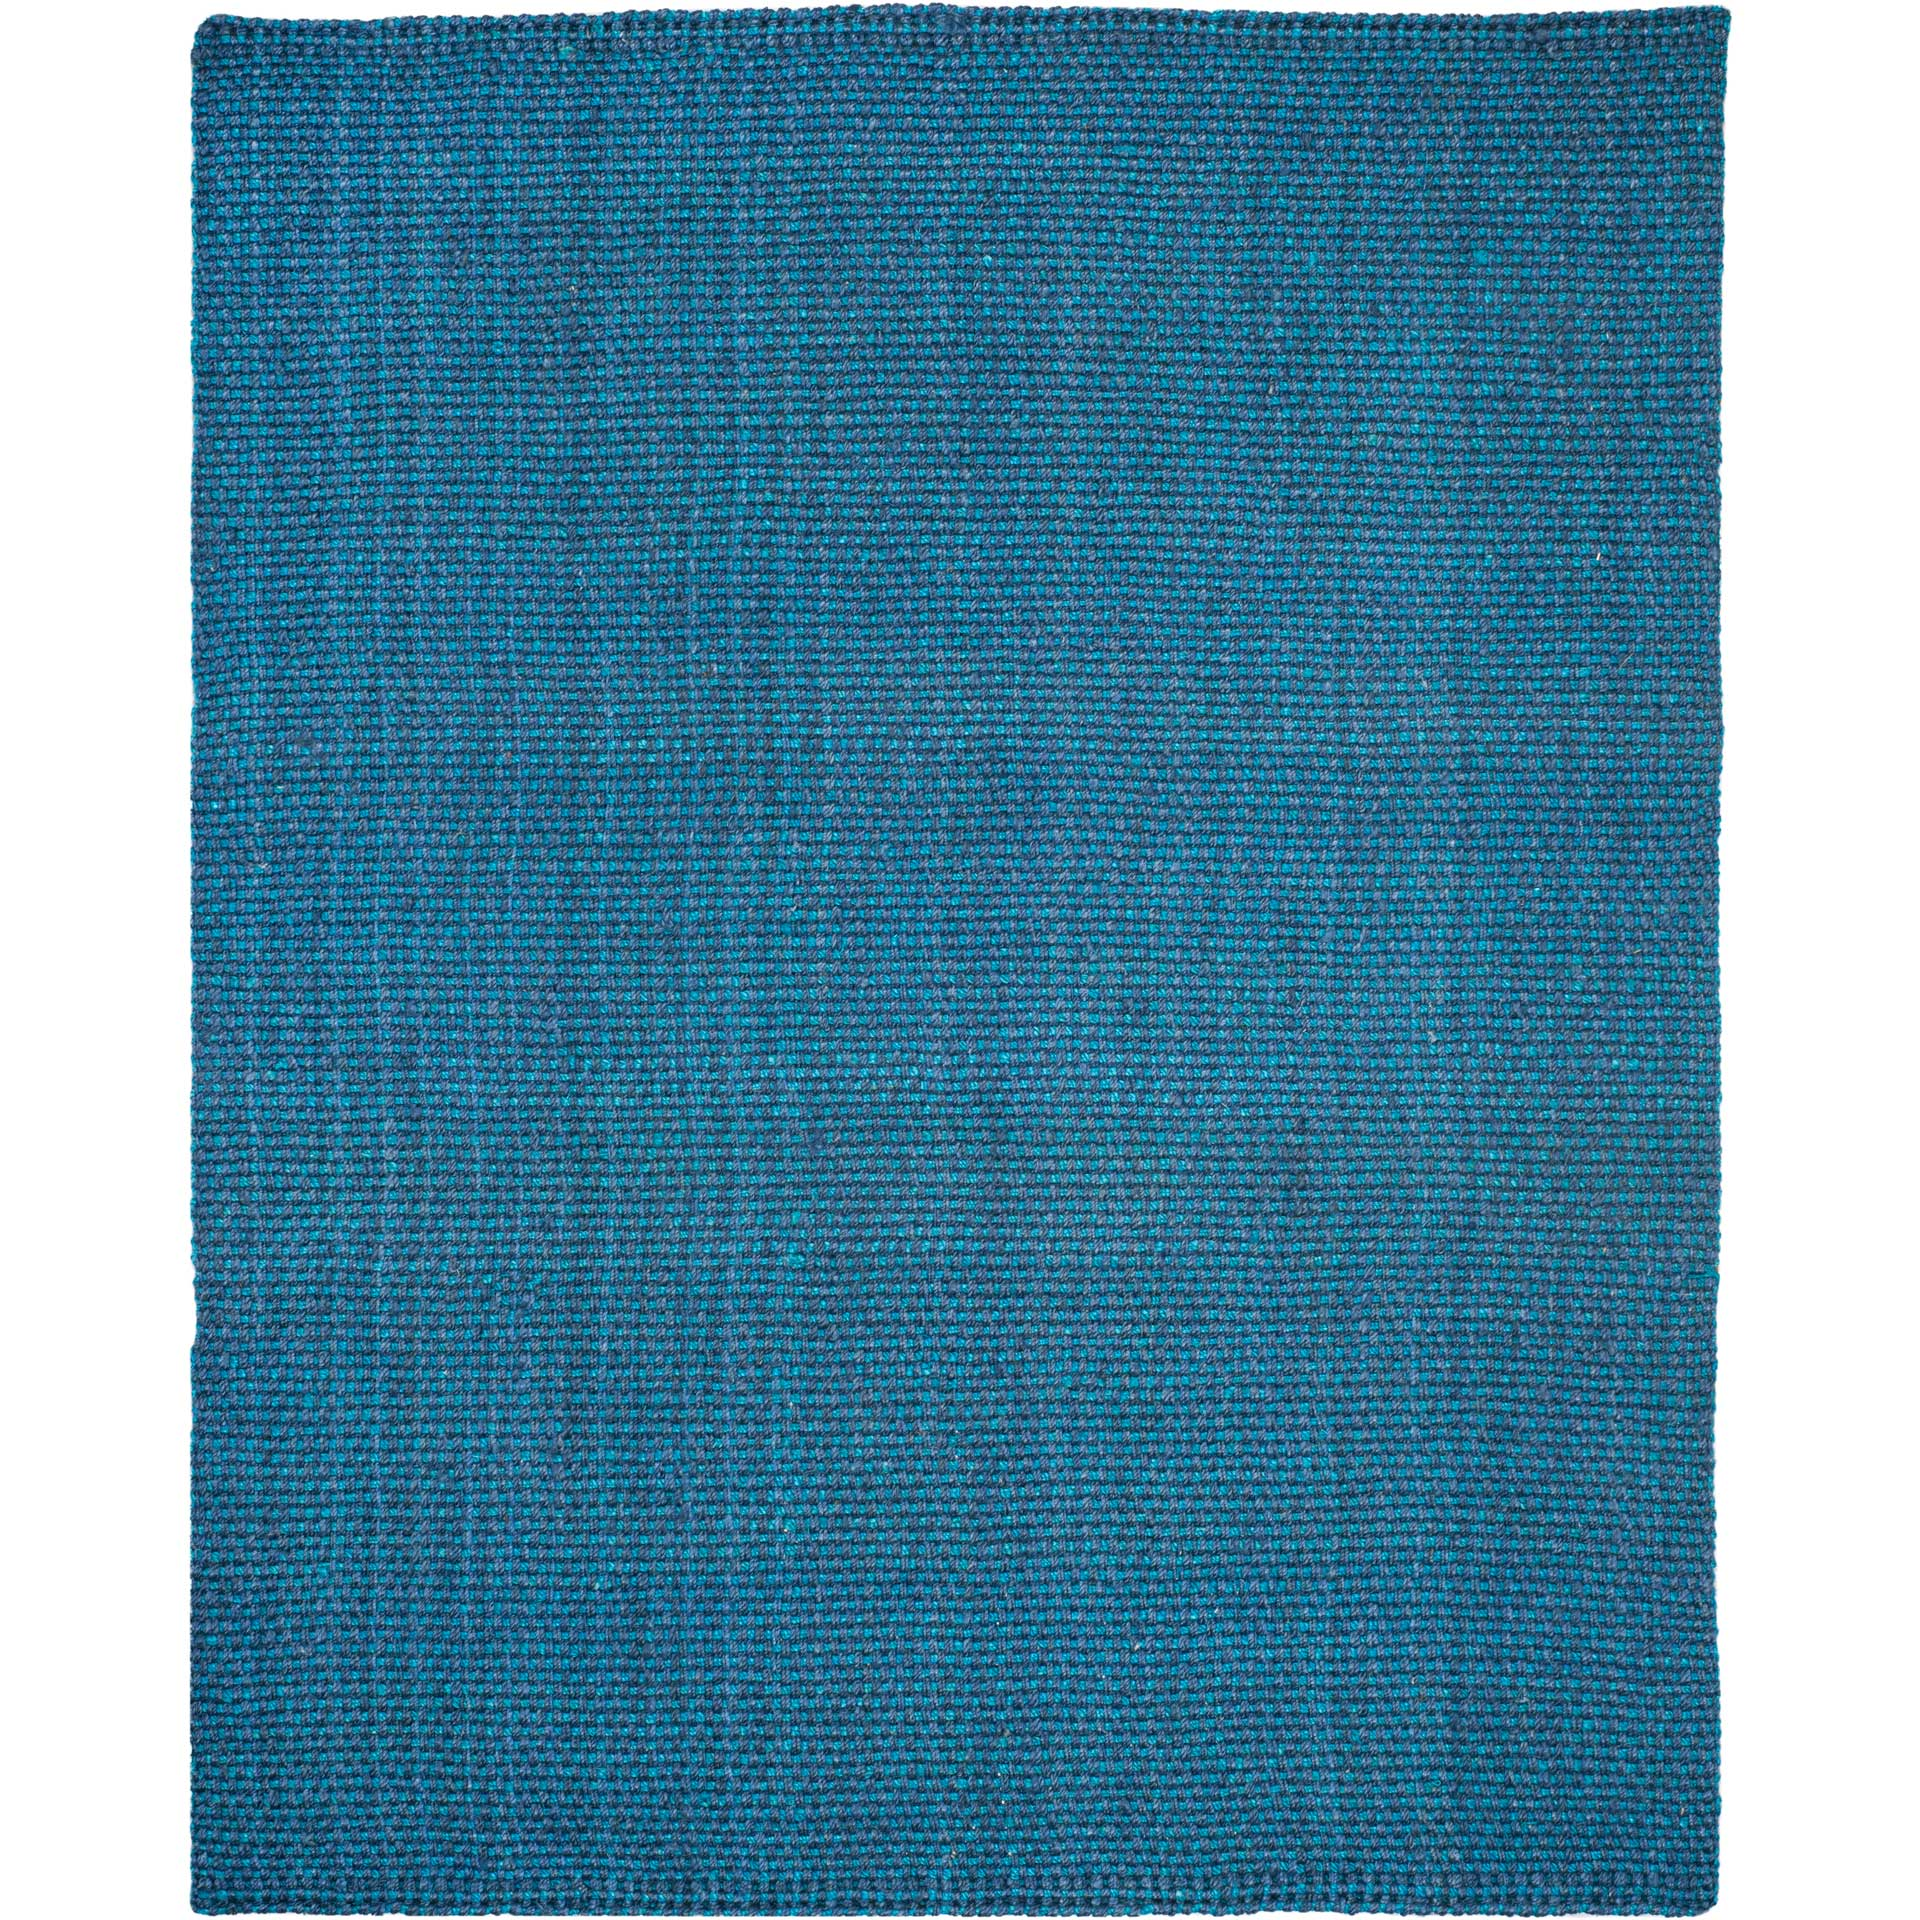 Natural Fiber Blue Area Rug